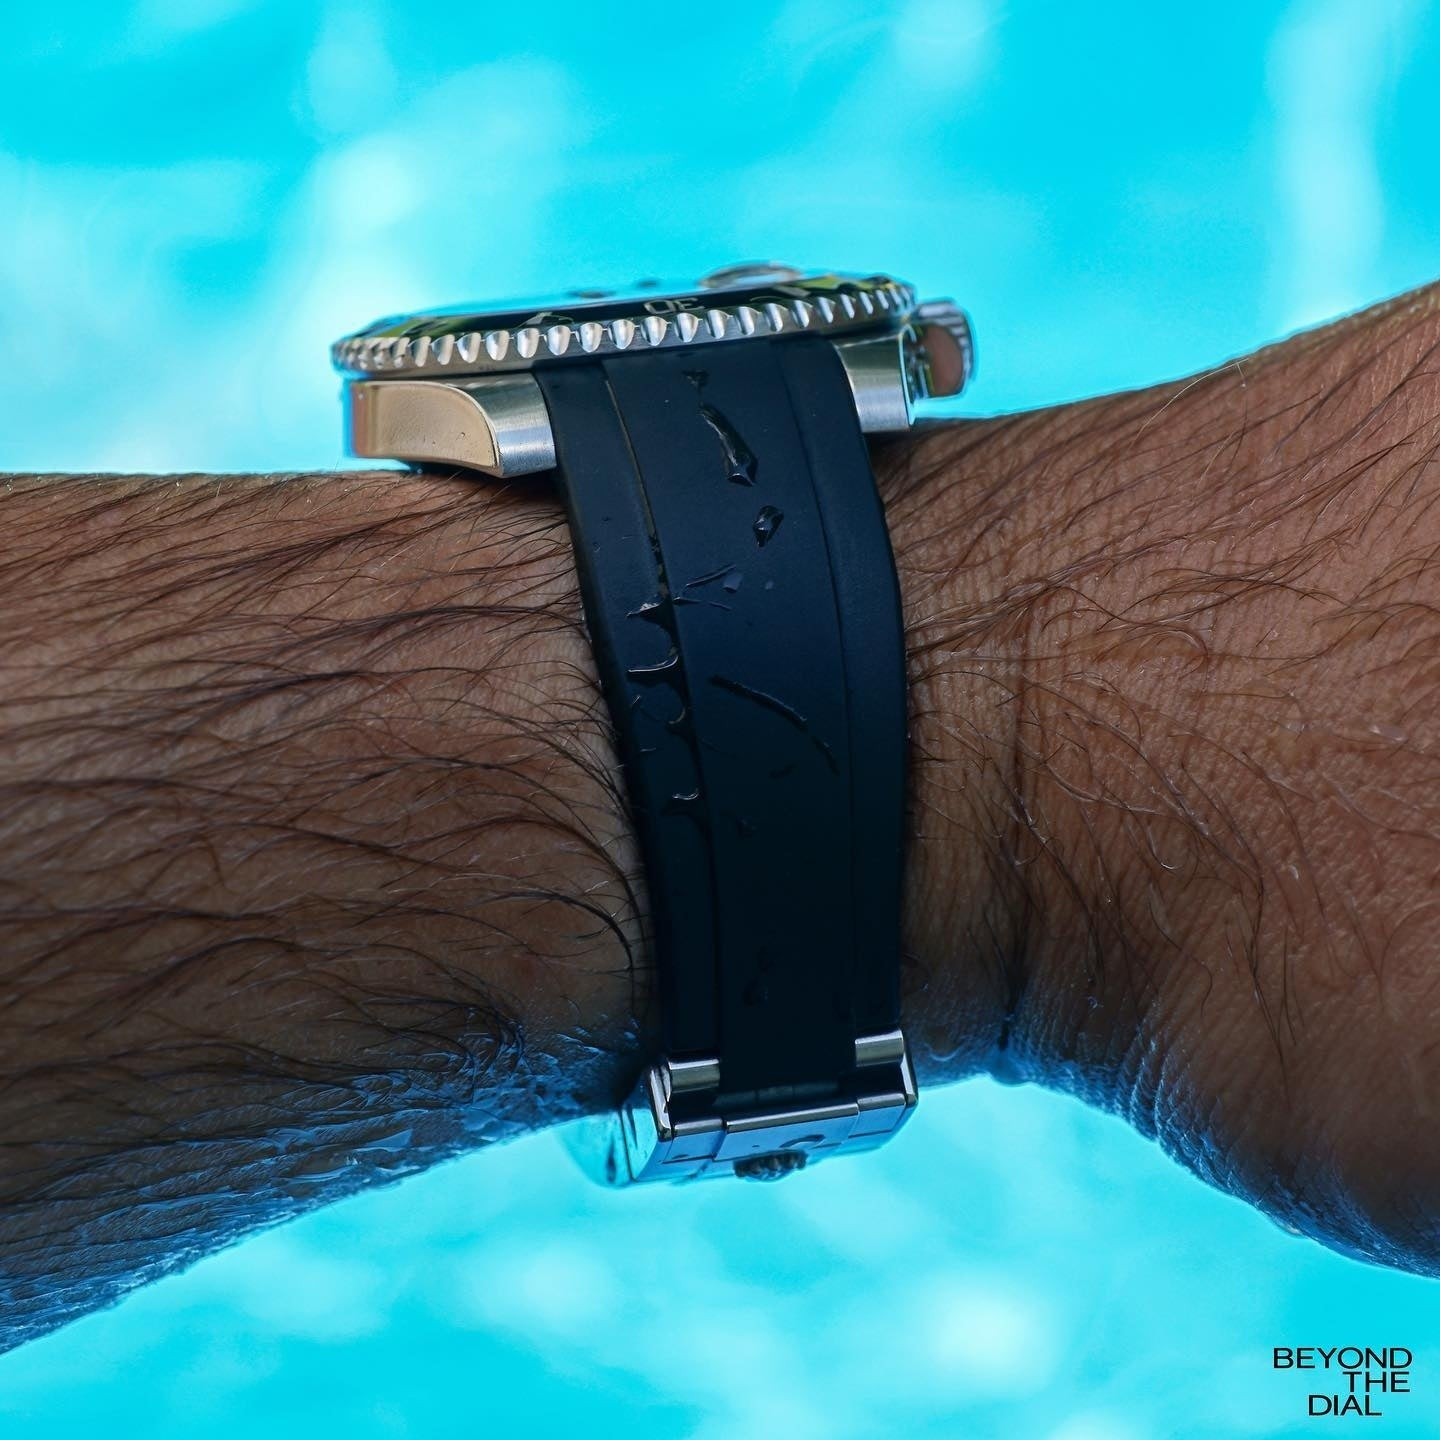 rolex submariner on black rubber everest bands in water